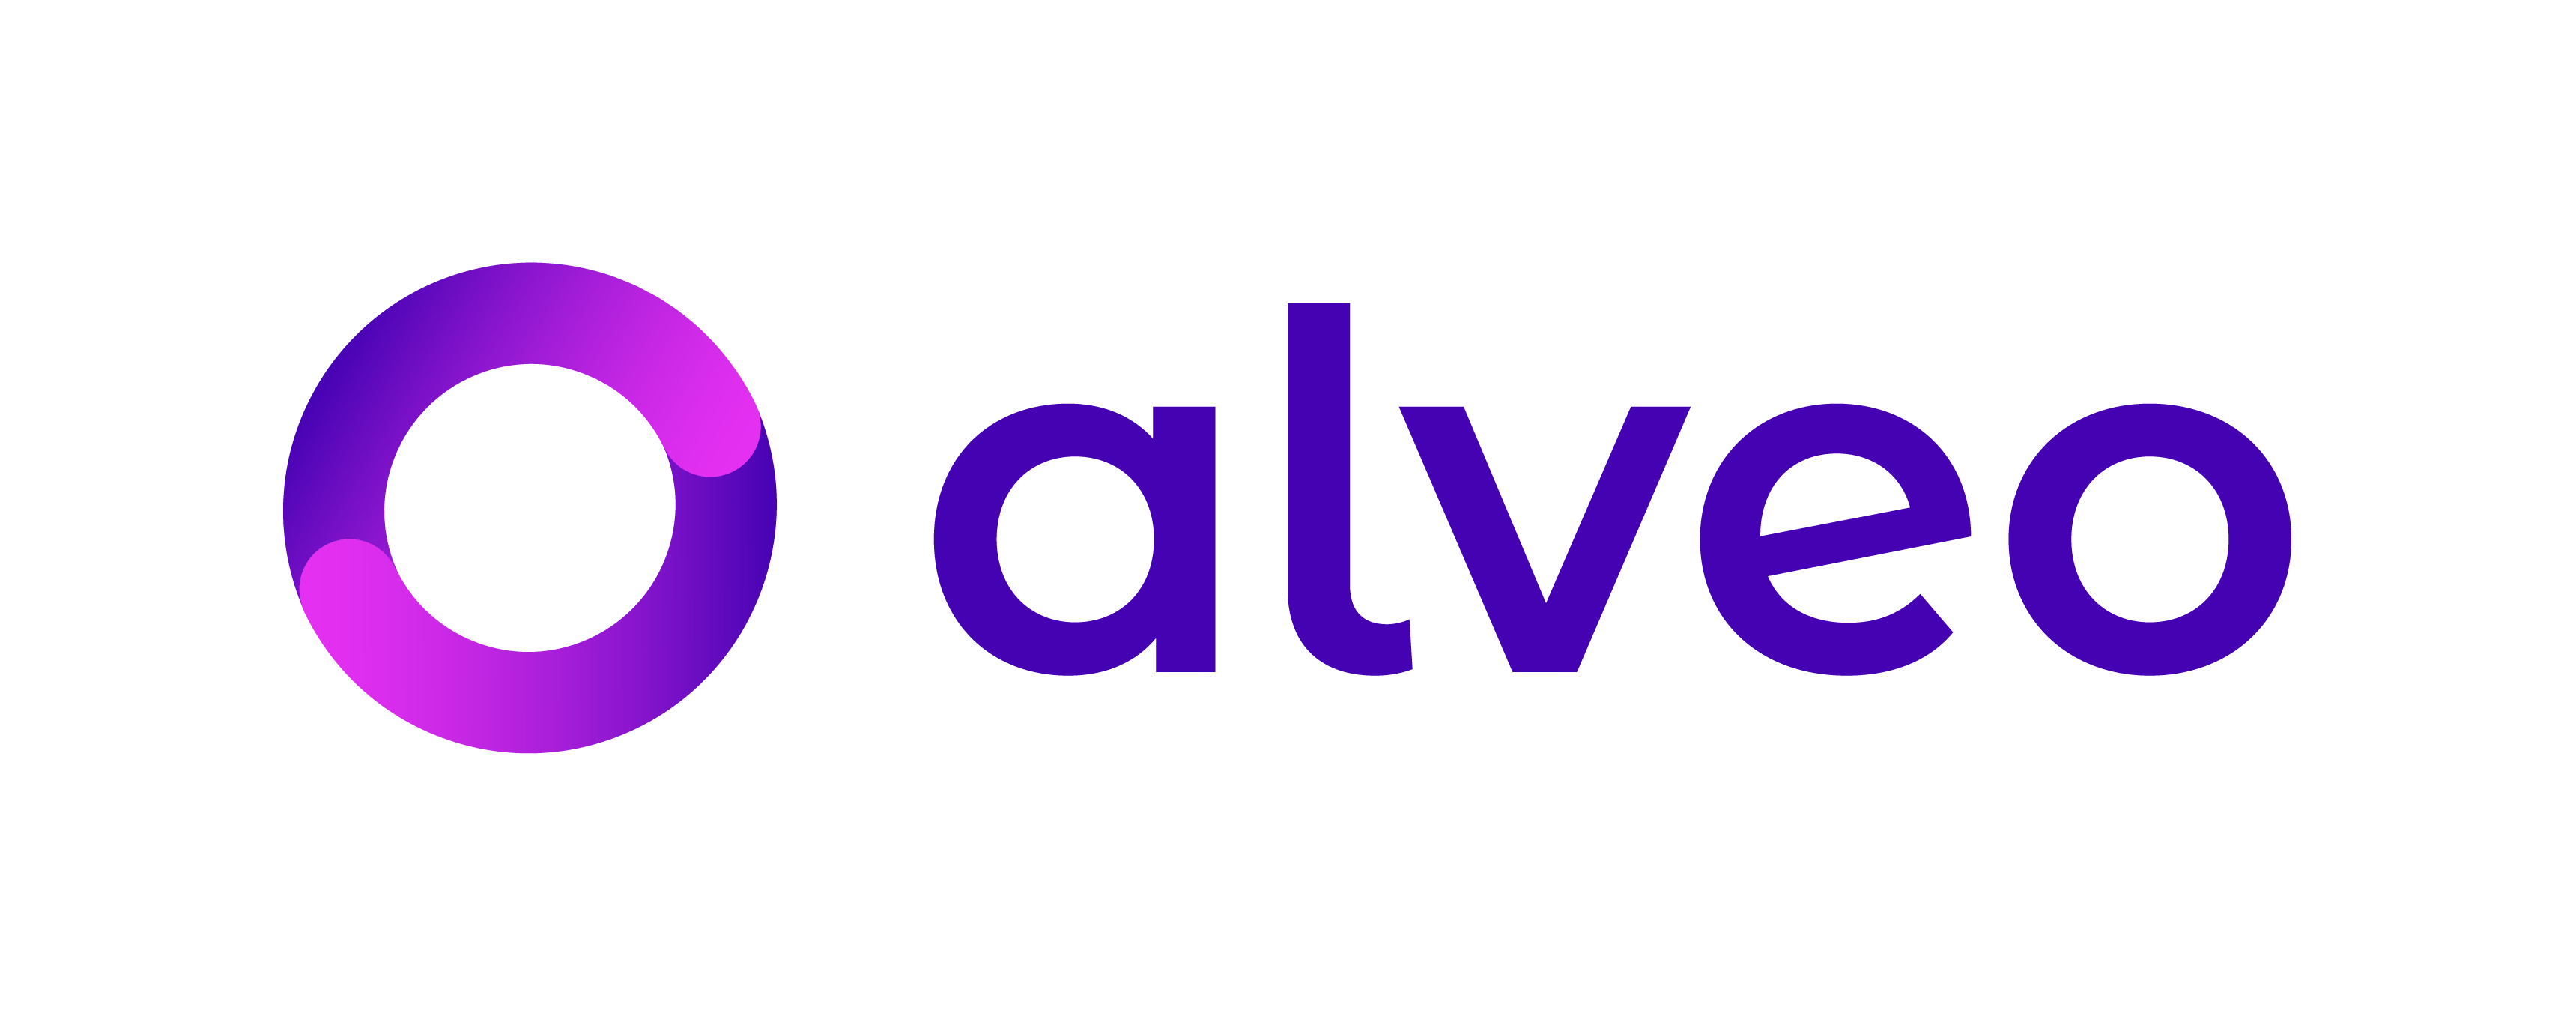 Asset Control Rebrands as Alveo Following Technology Innovation and Managed Services Growth